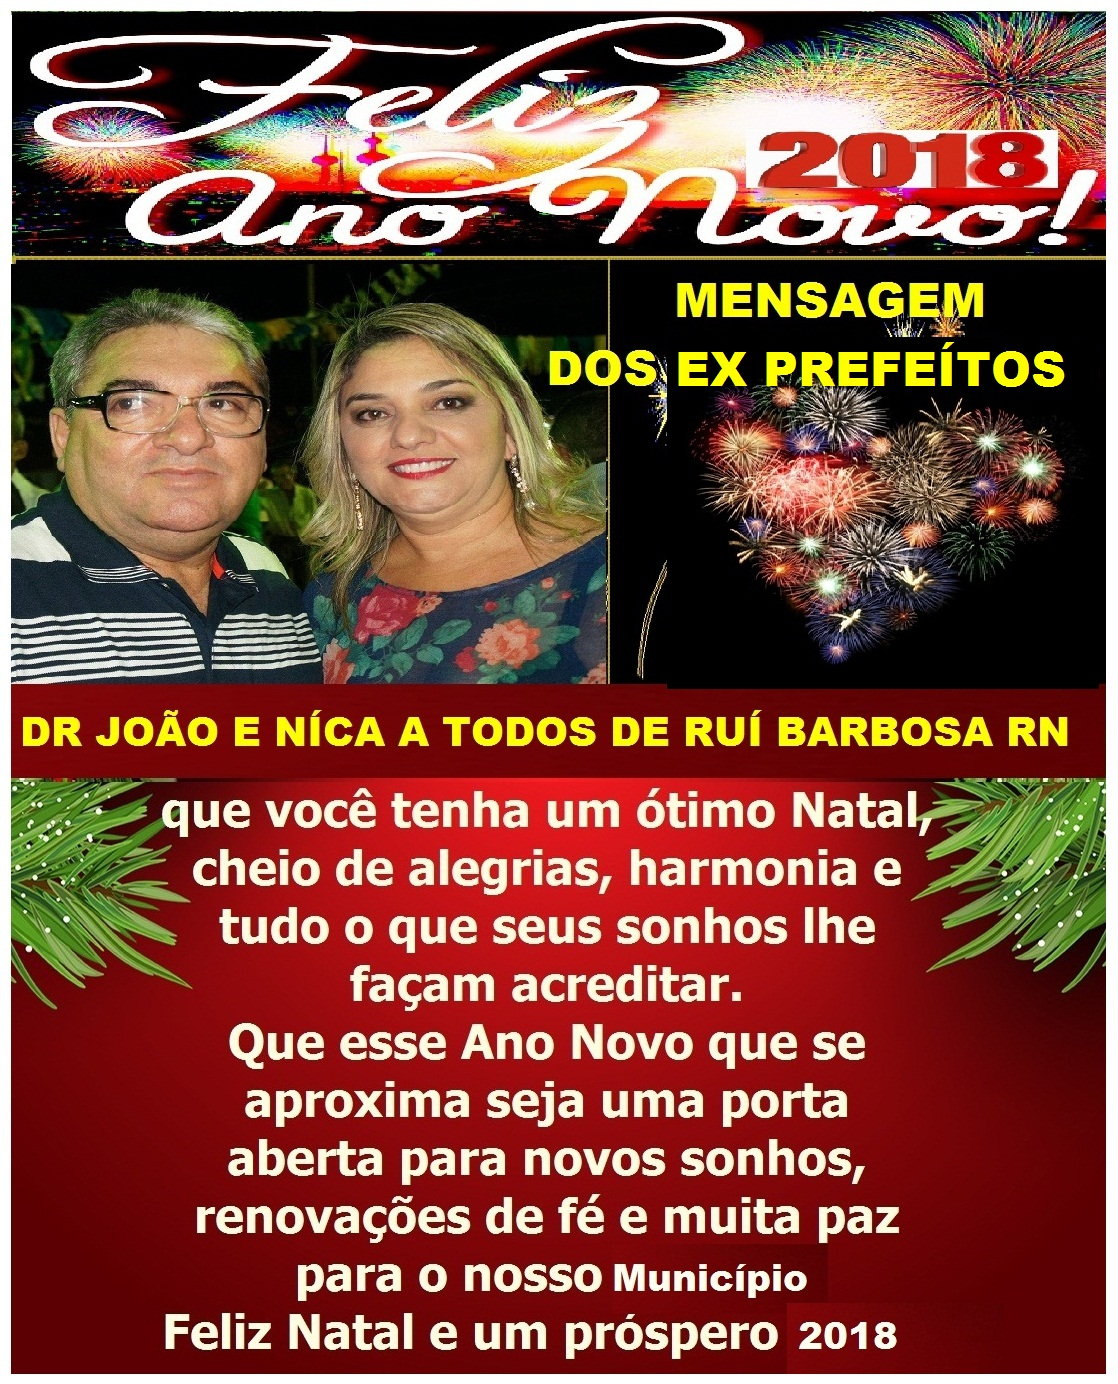 MENSAGEM DOS EX PREFEITOS DR JOÃO E NICA